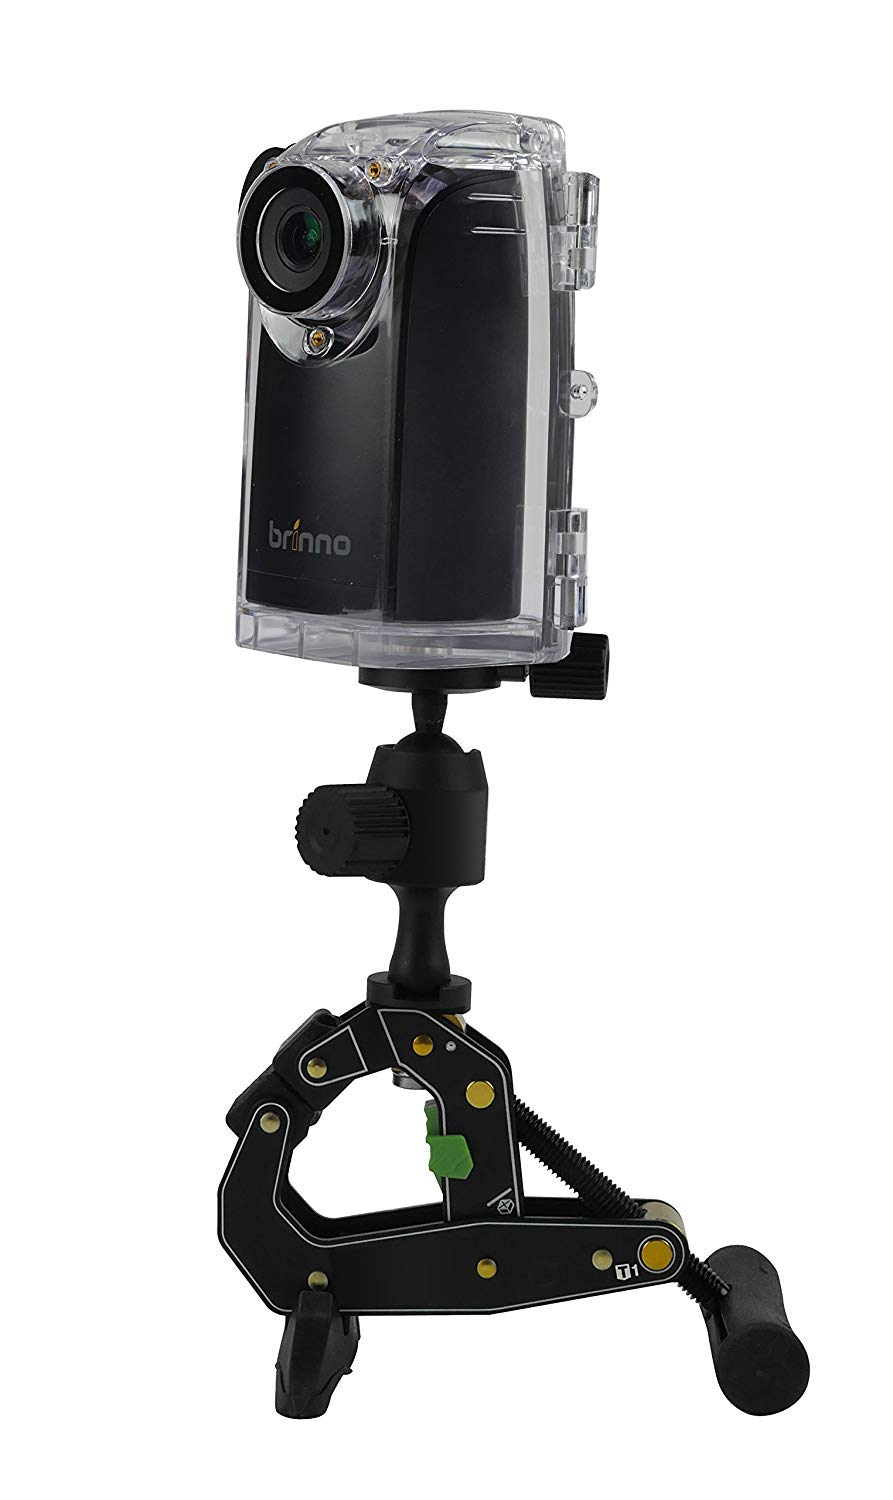 Brinno BCC200 Time Lapse Camera w/Mount & Accessories Best For Construction & Outdoor Security 80 Days Battery Life, 720p HD, Weather Resistant Case Batteries Included by Brinno